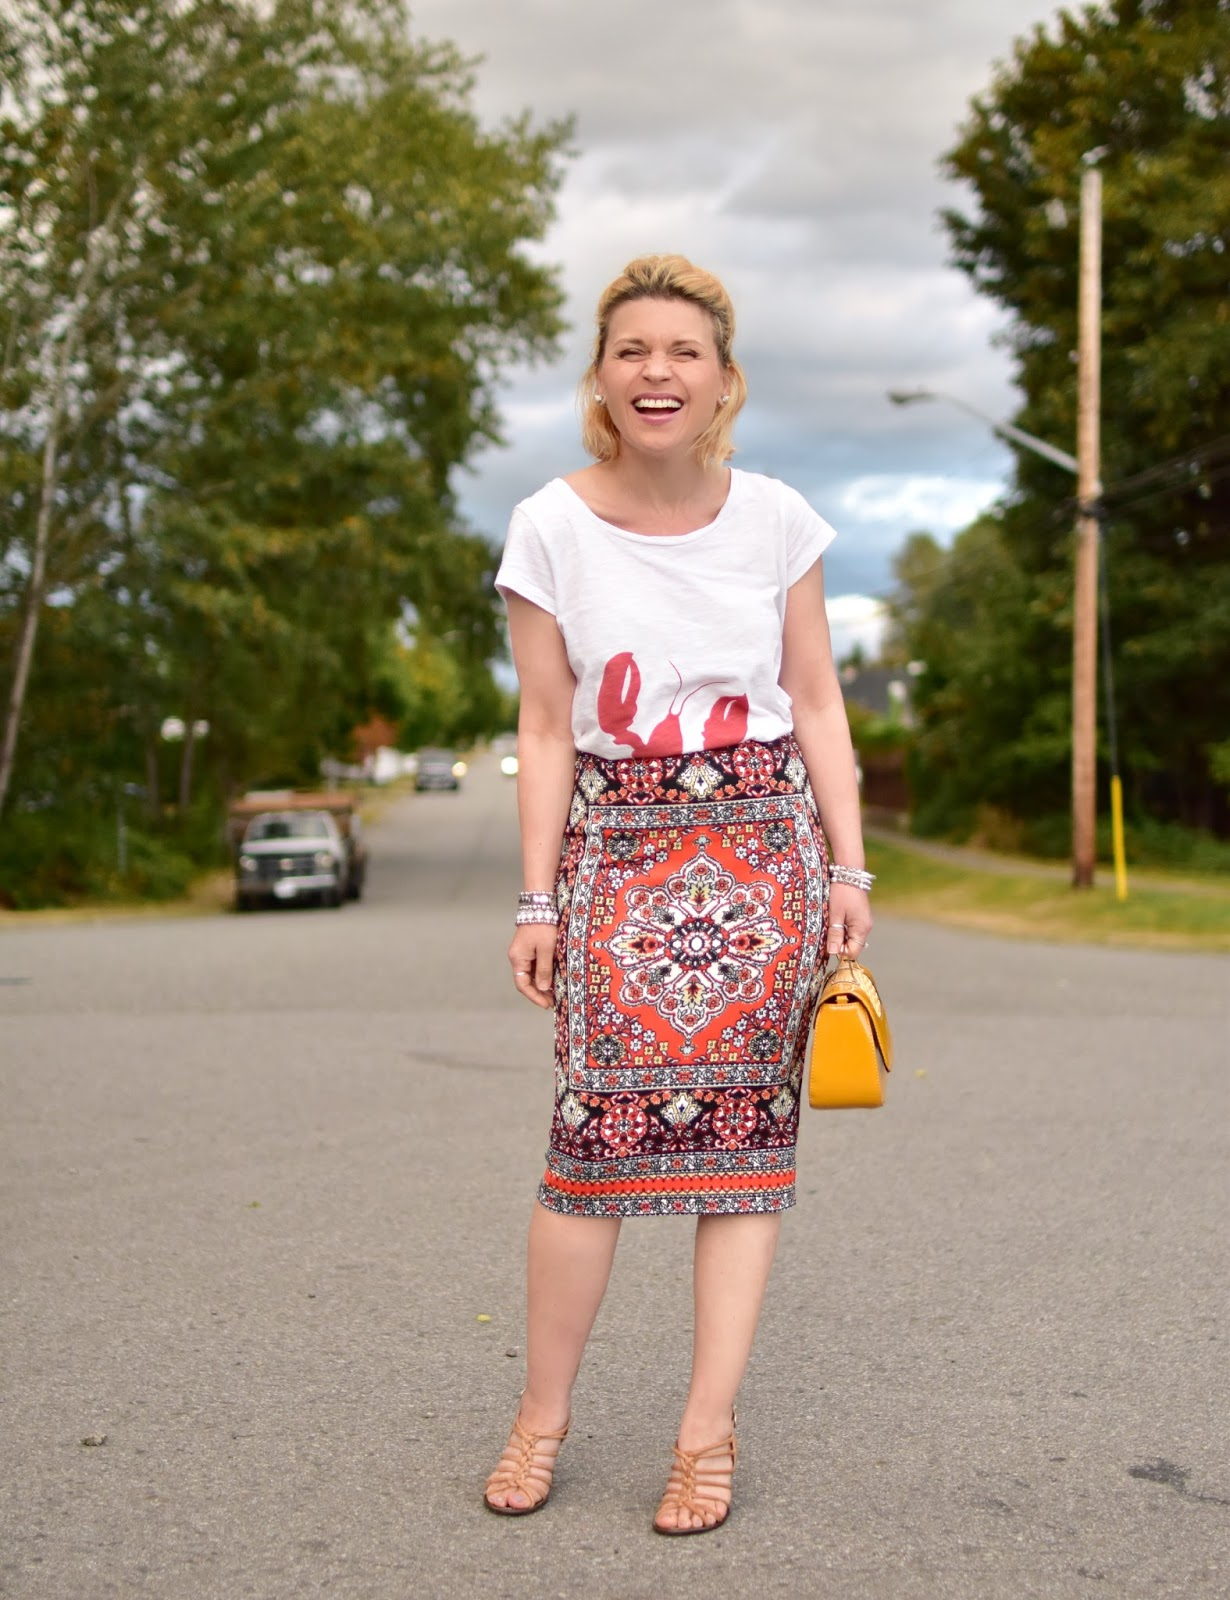 Monika Faulkner styles a lobster graphic tee with a patterned pencil skirt, strappy sandals, and yellow mini bag